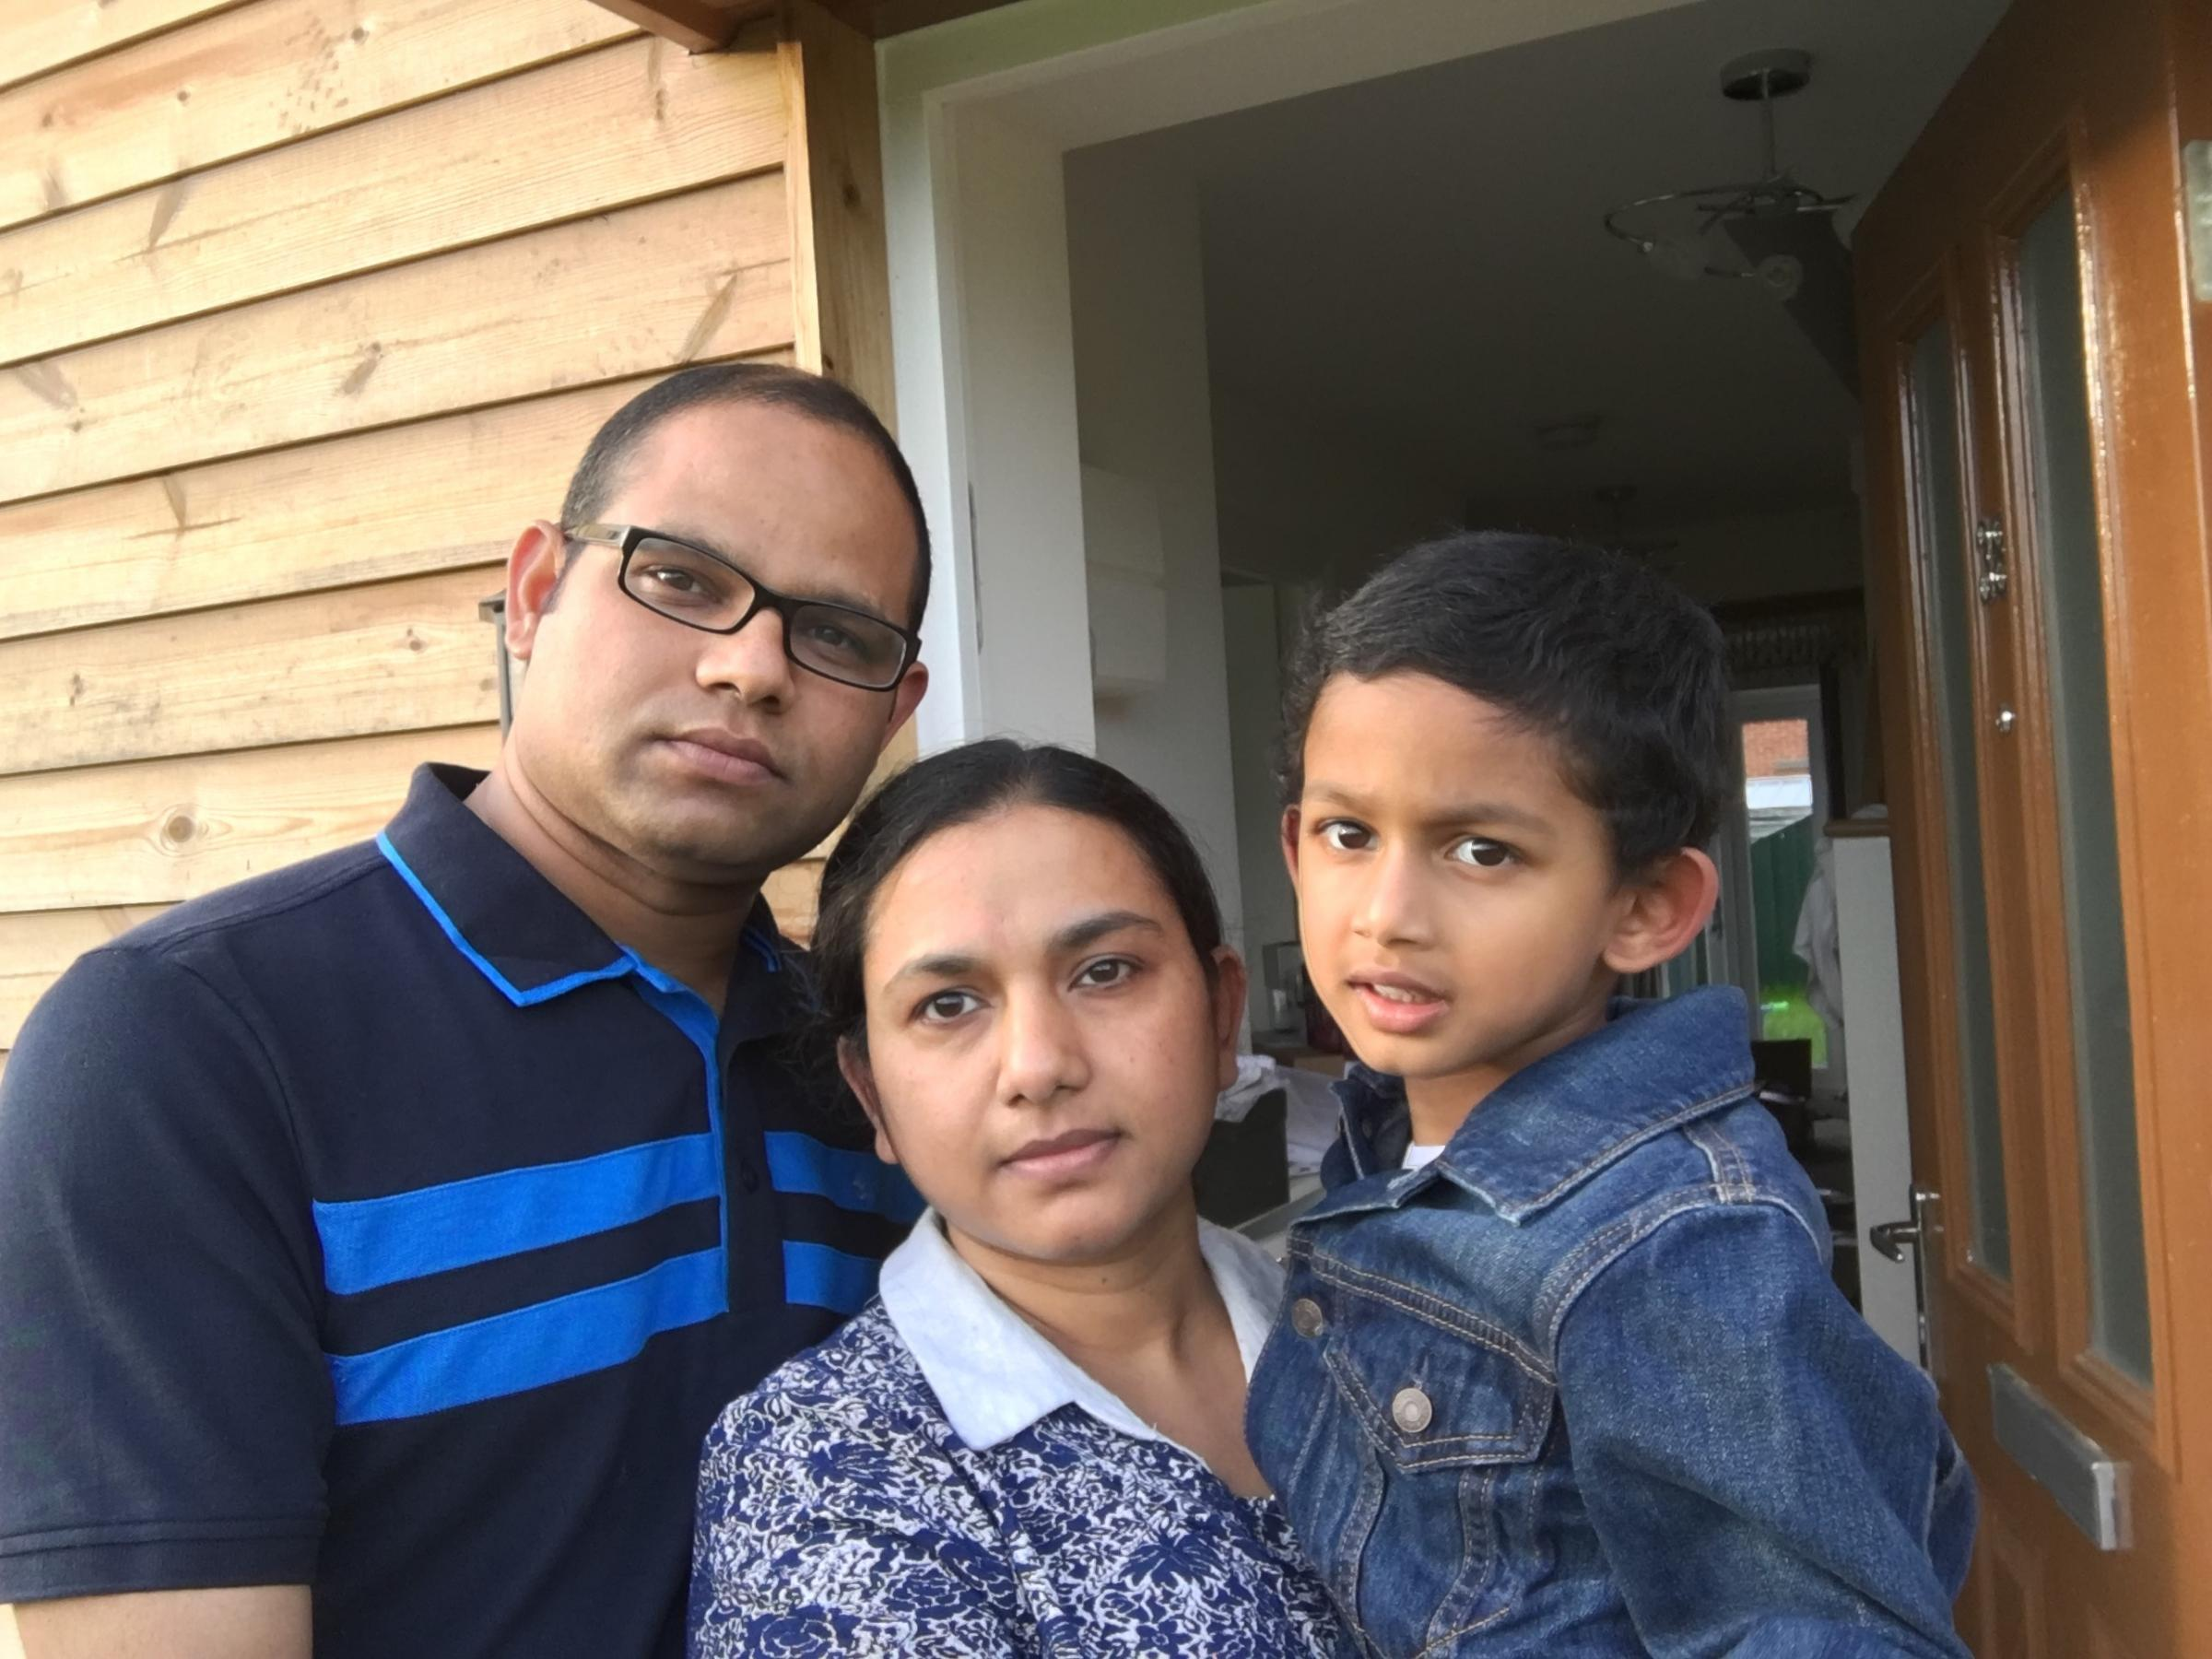 Debi Das with his wife and son